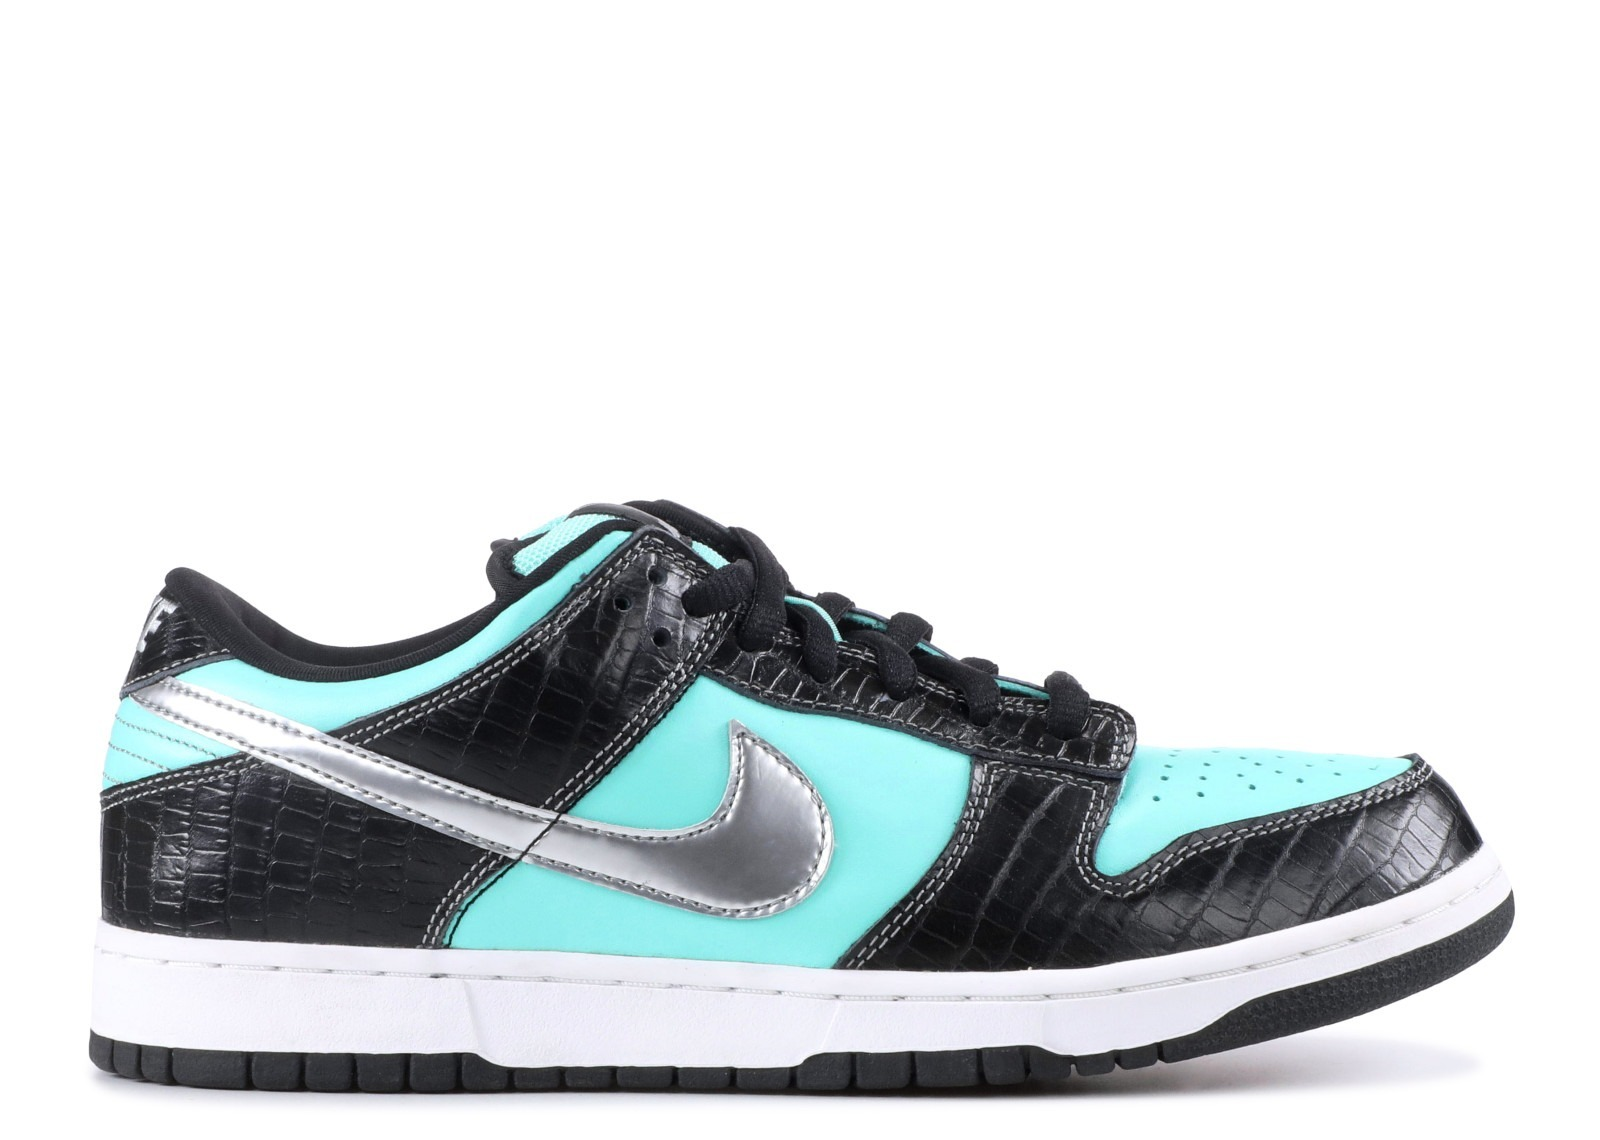 Top 10 Best Nike SB Dunks Of All Time - Tiffany